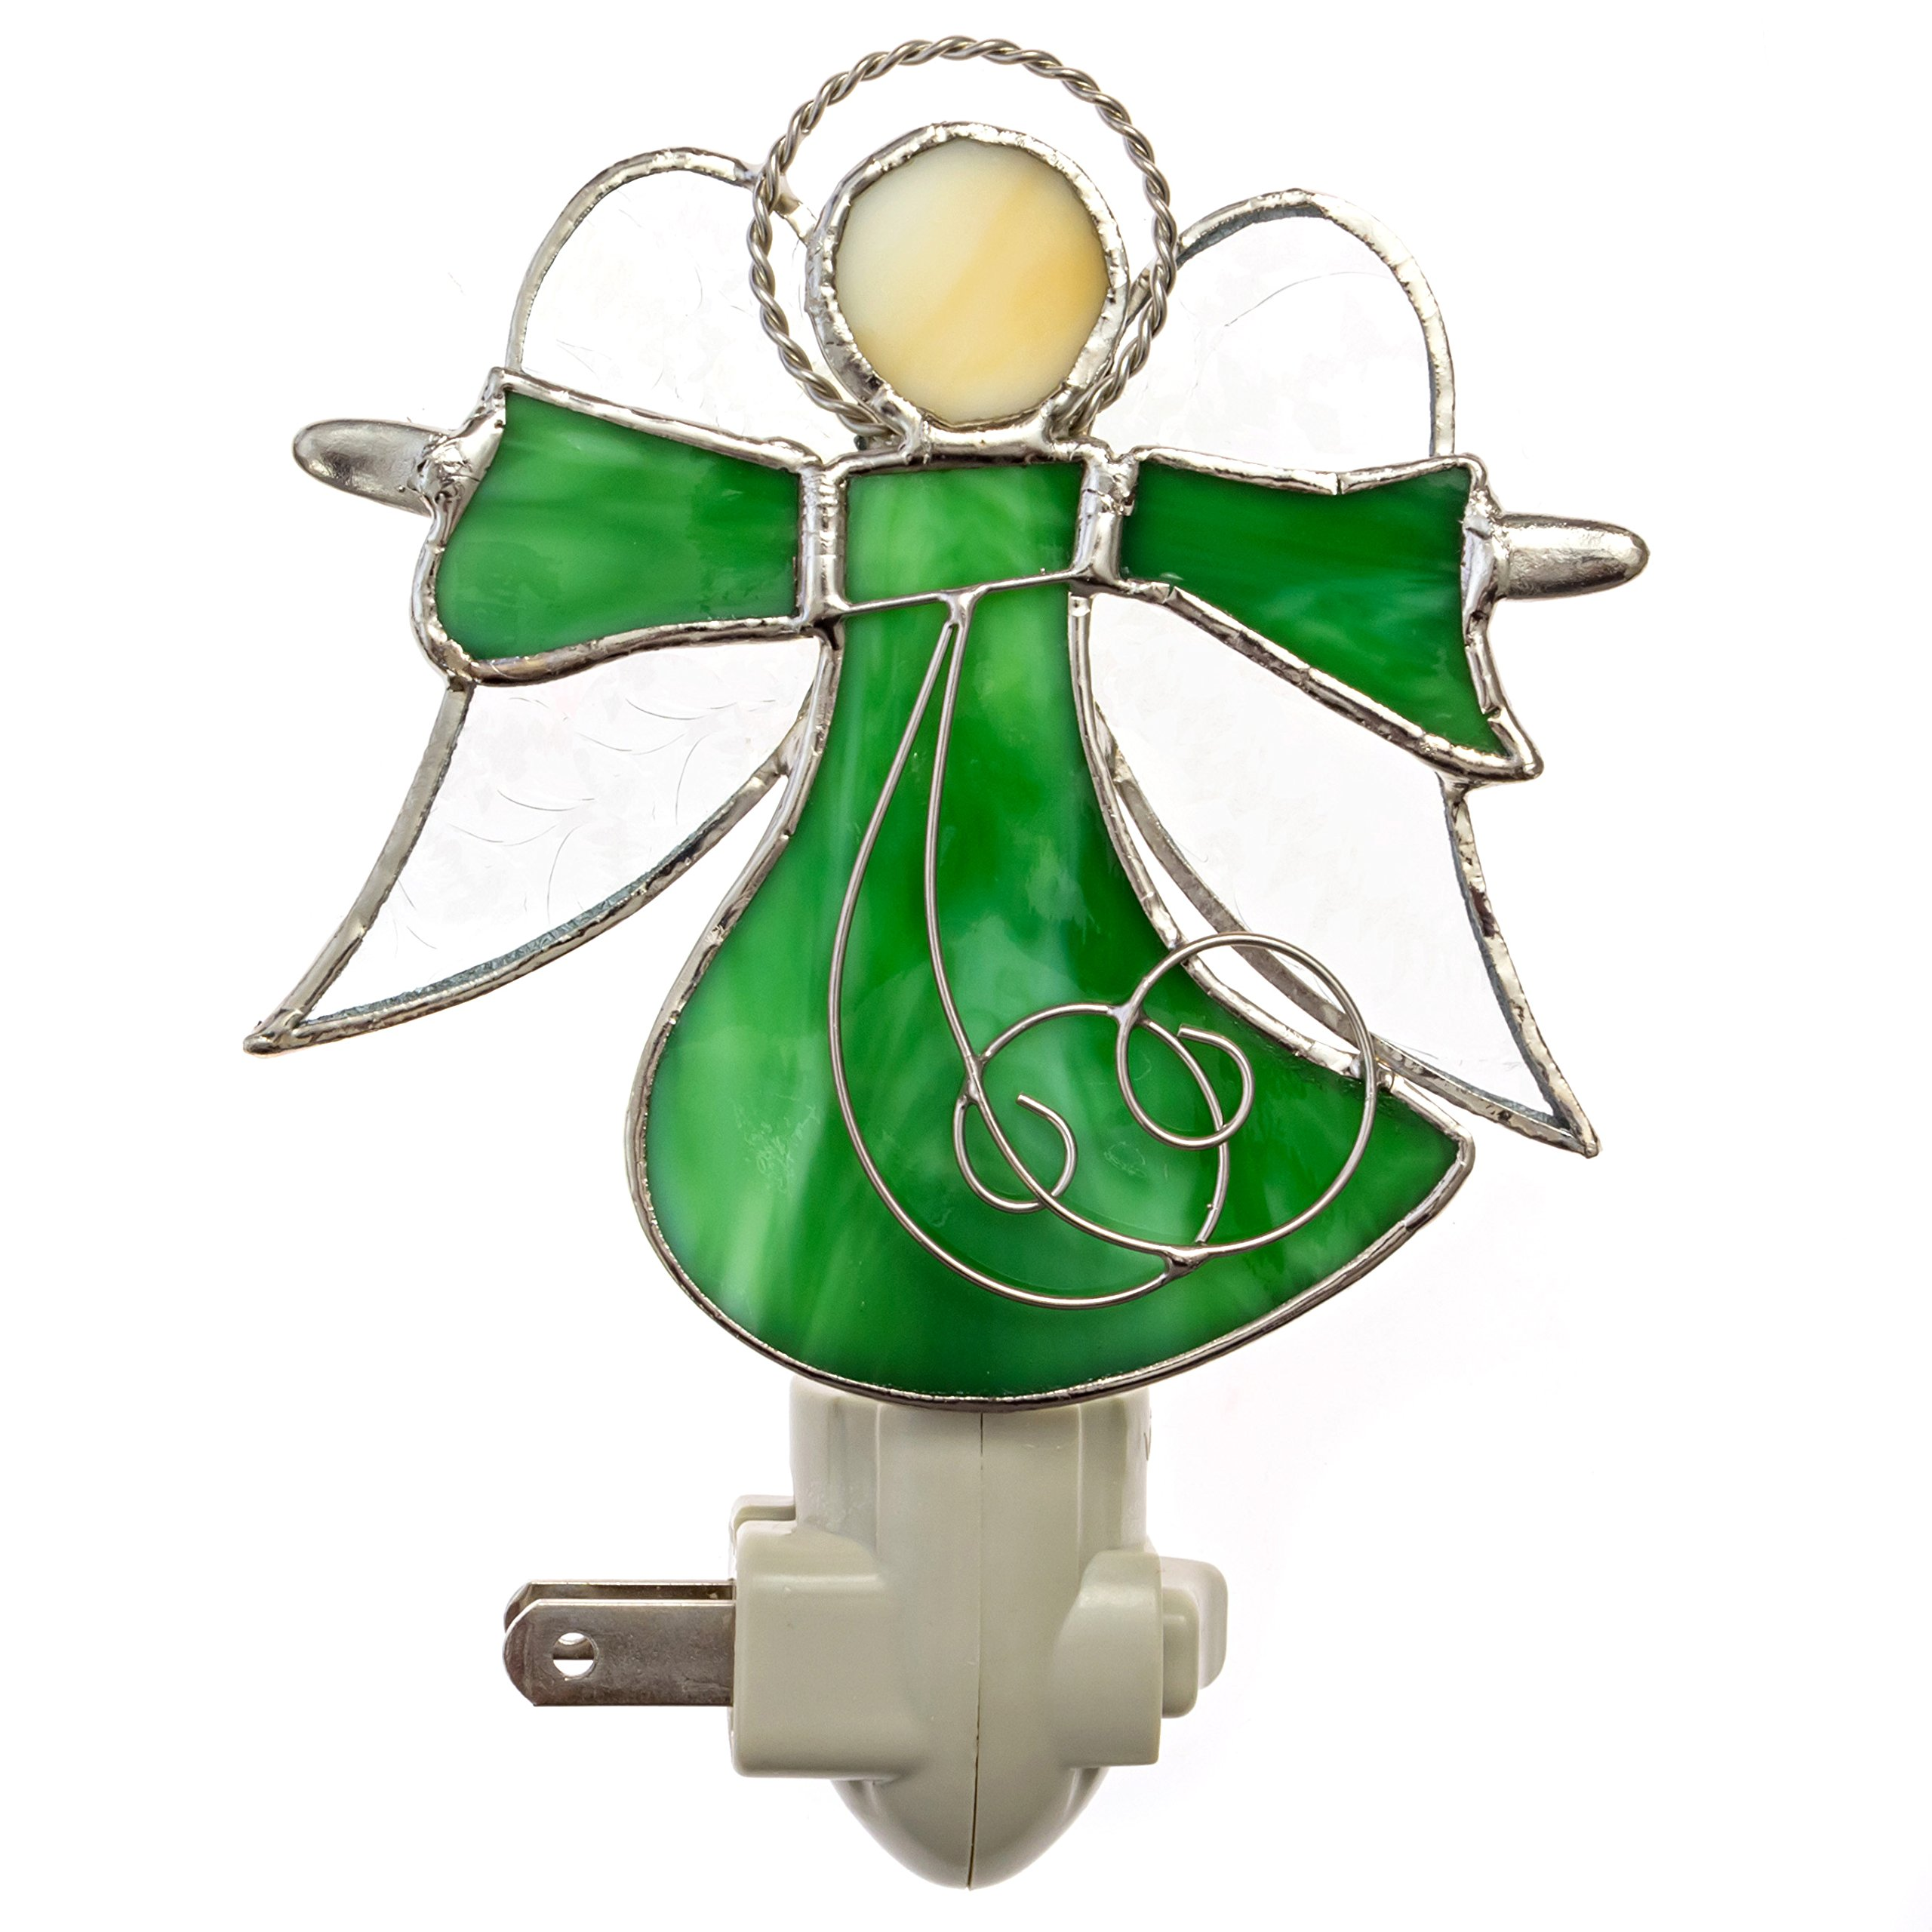 Green Angel Night Light by Everyday Beautiful Gifts: Colorful Stained Glass Nightlight, Functional Art, Elegant Home Decoration, Guardian Angel Design, Gift Idea for Every Occasion